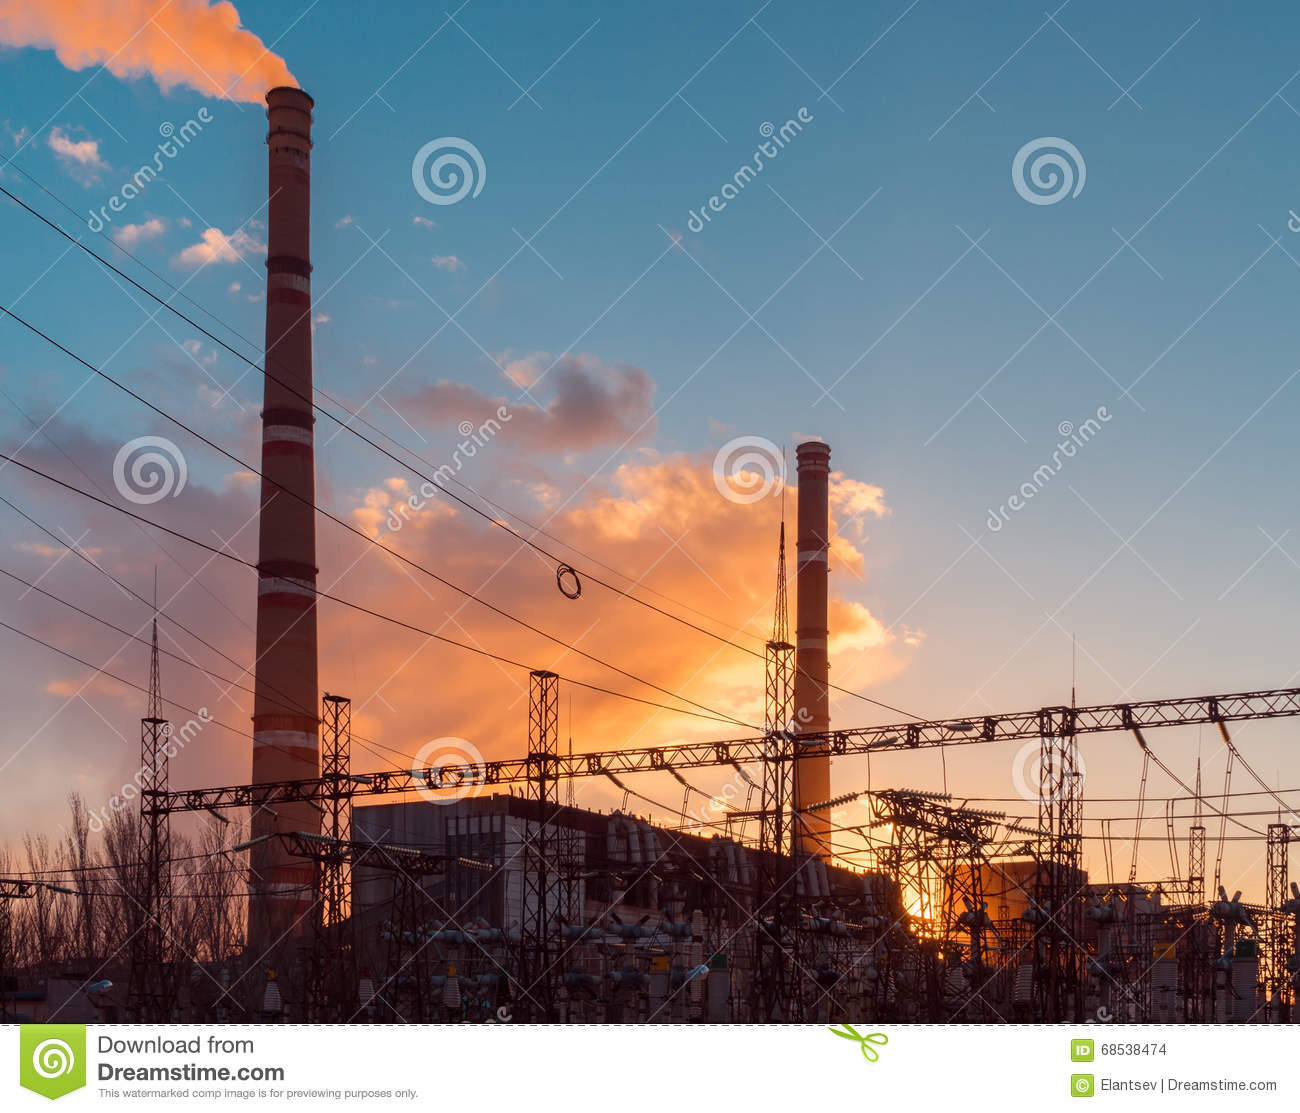 Industry electricity plant, during sunset, electric substation with power lines